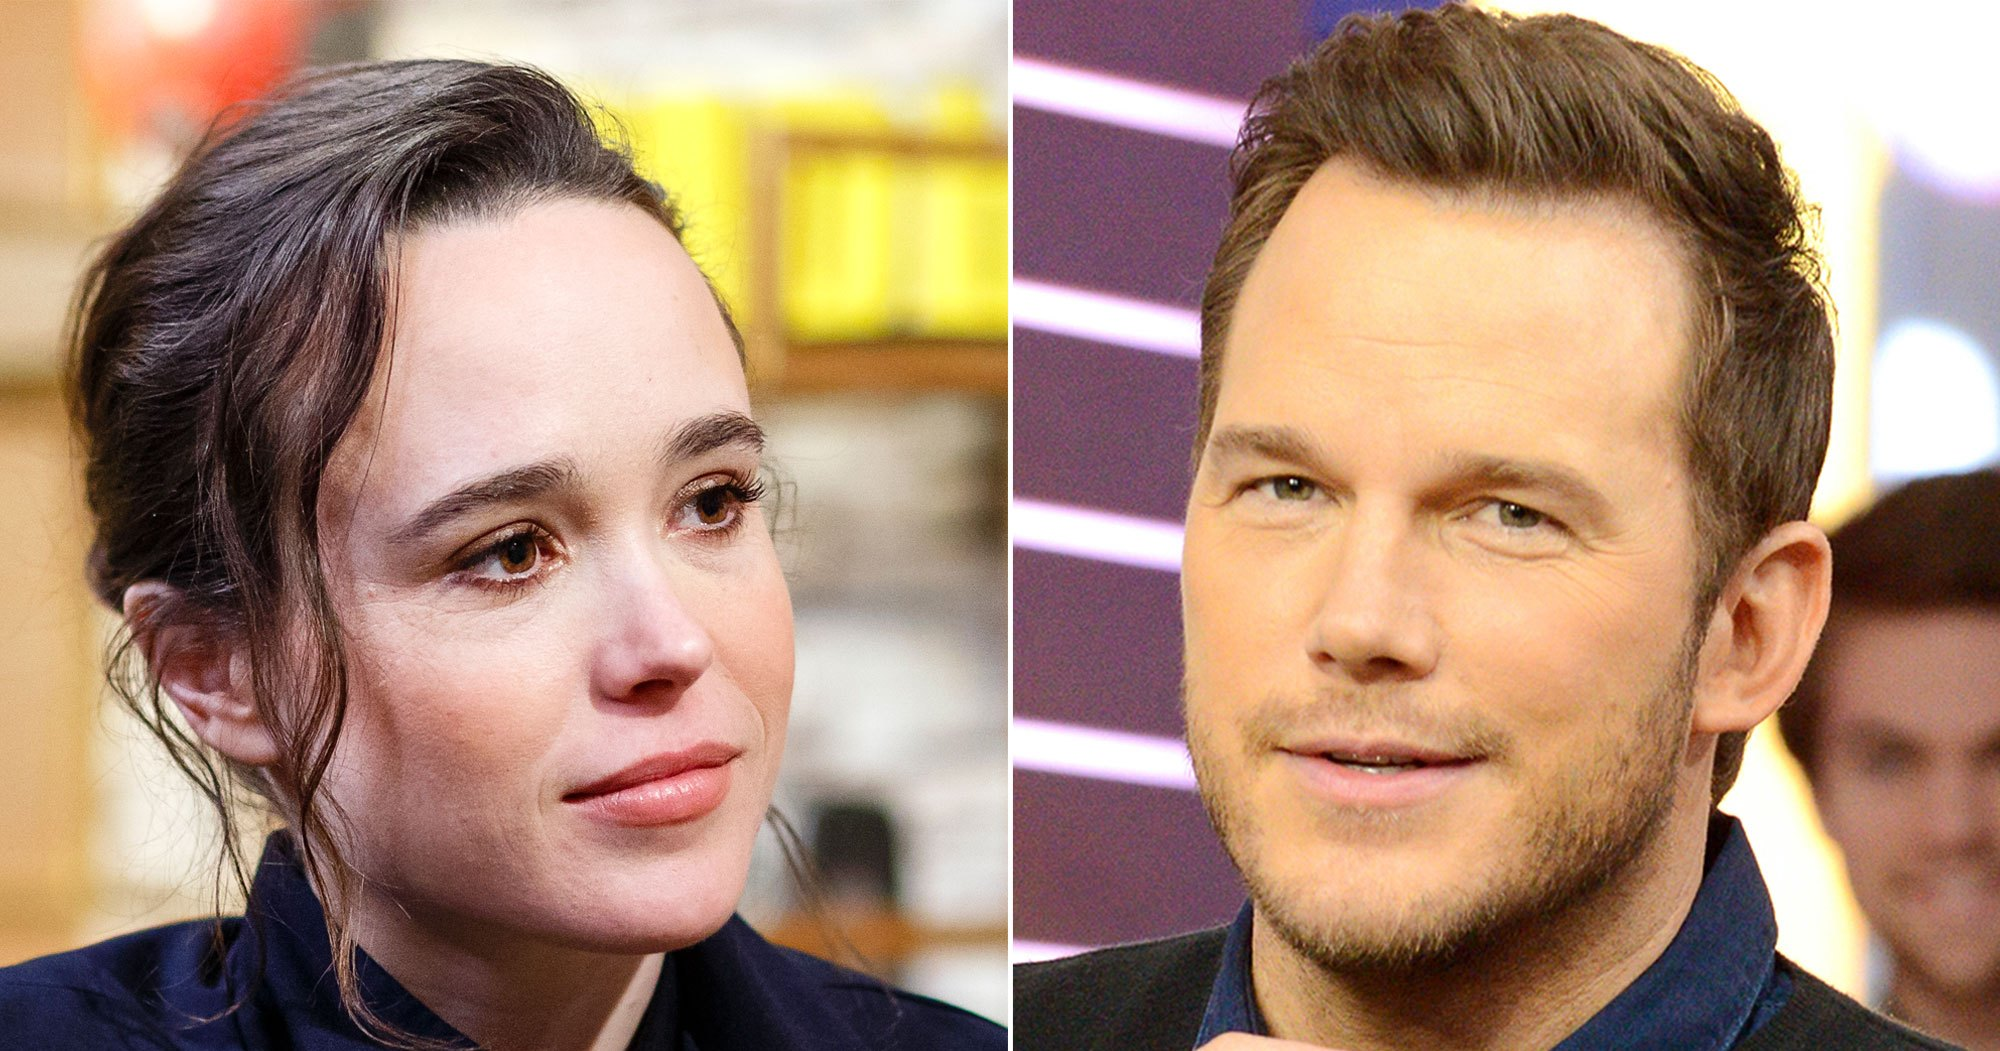 Ellen Page Doubles Down on Chris Pratt 'Anti-LGBTQ' Church Claim: 'There Aren't Two Sides'